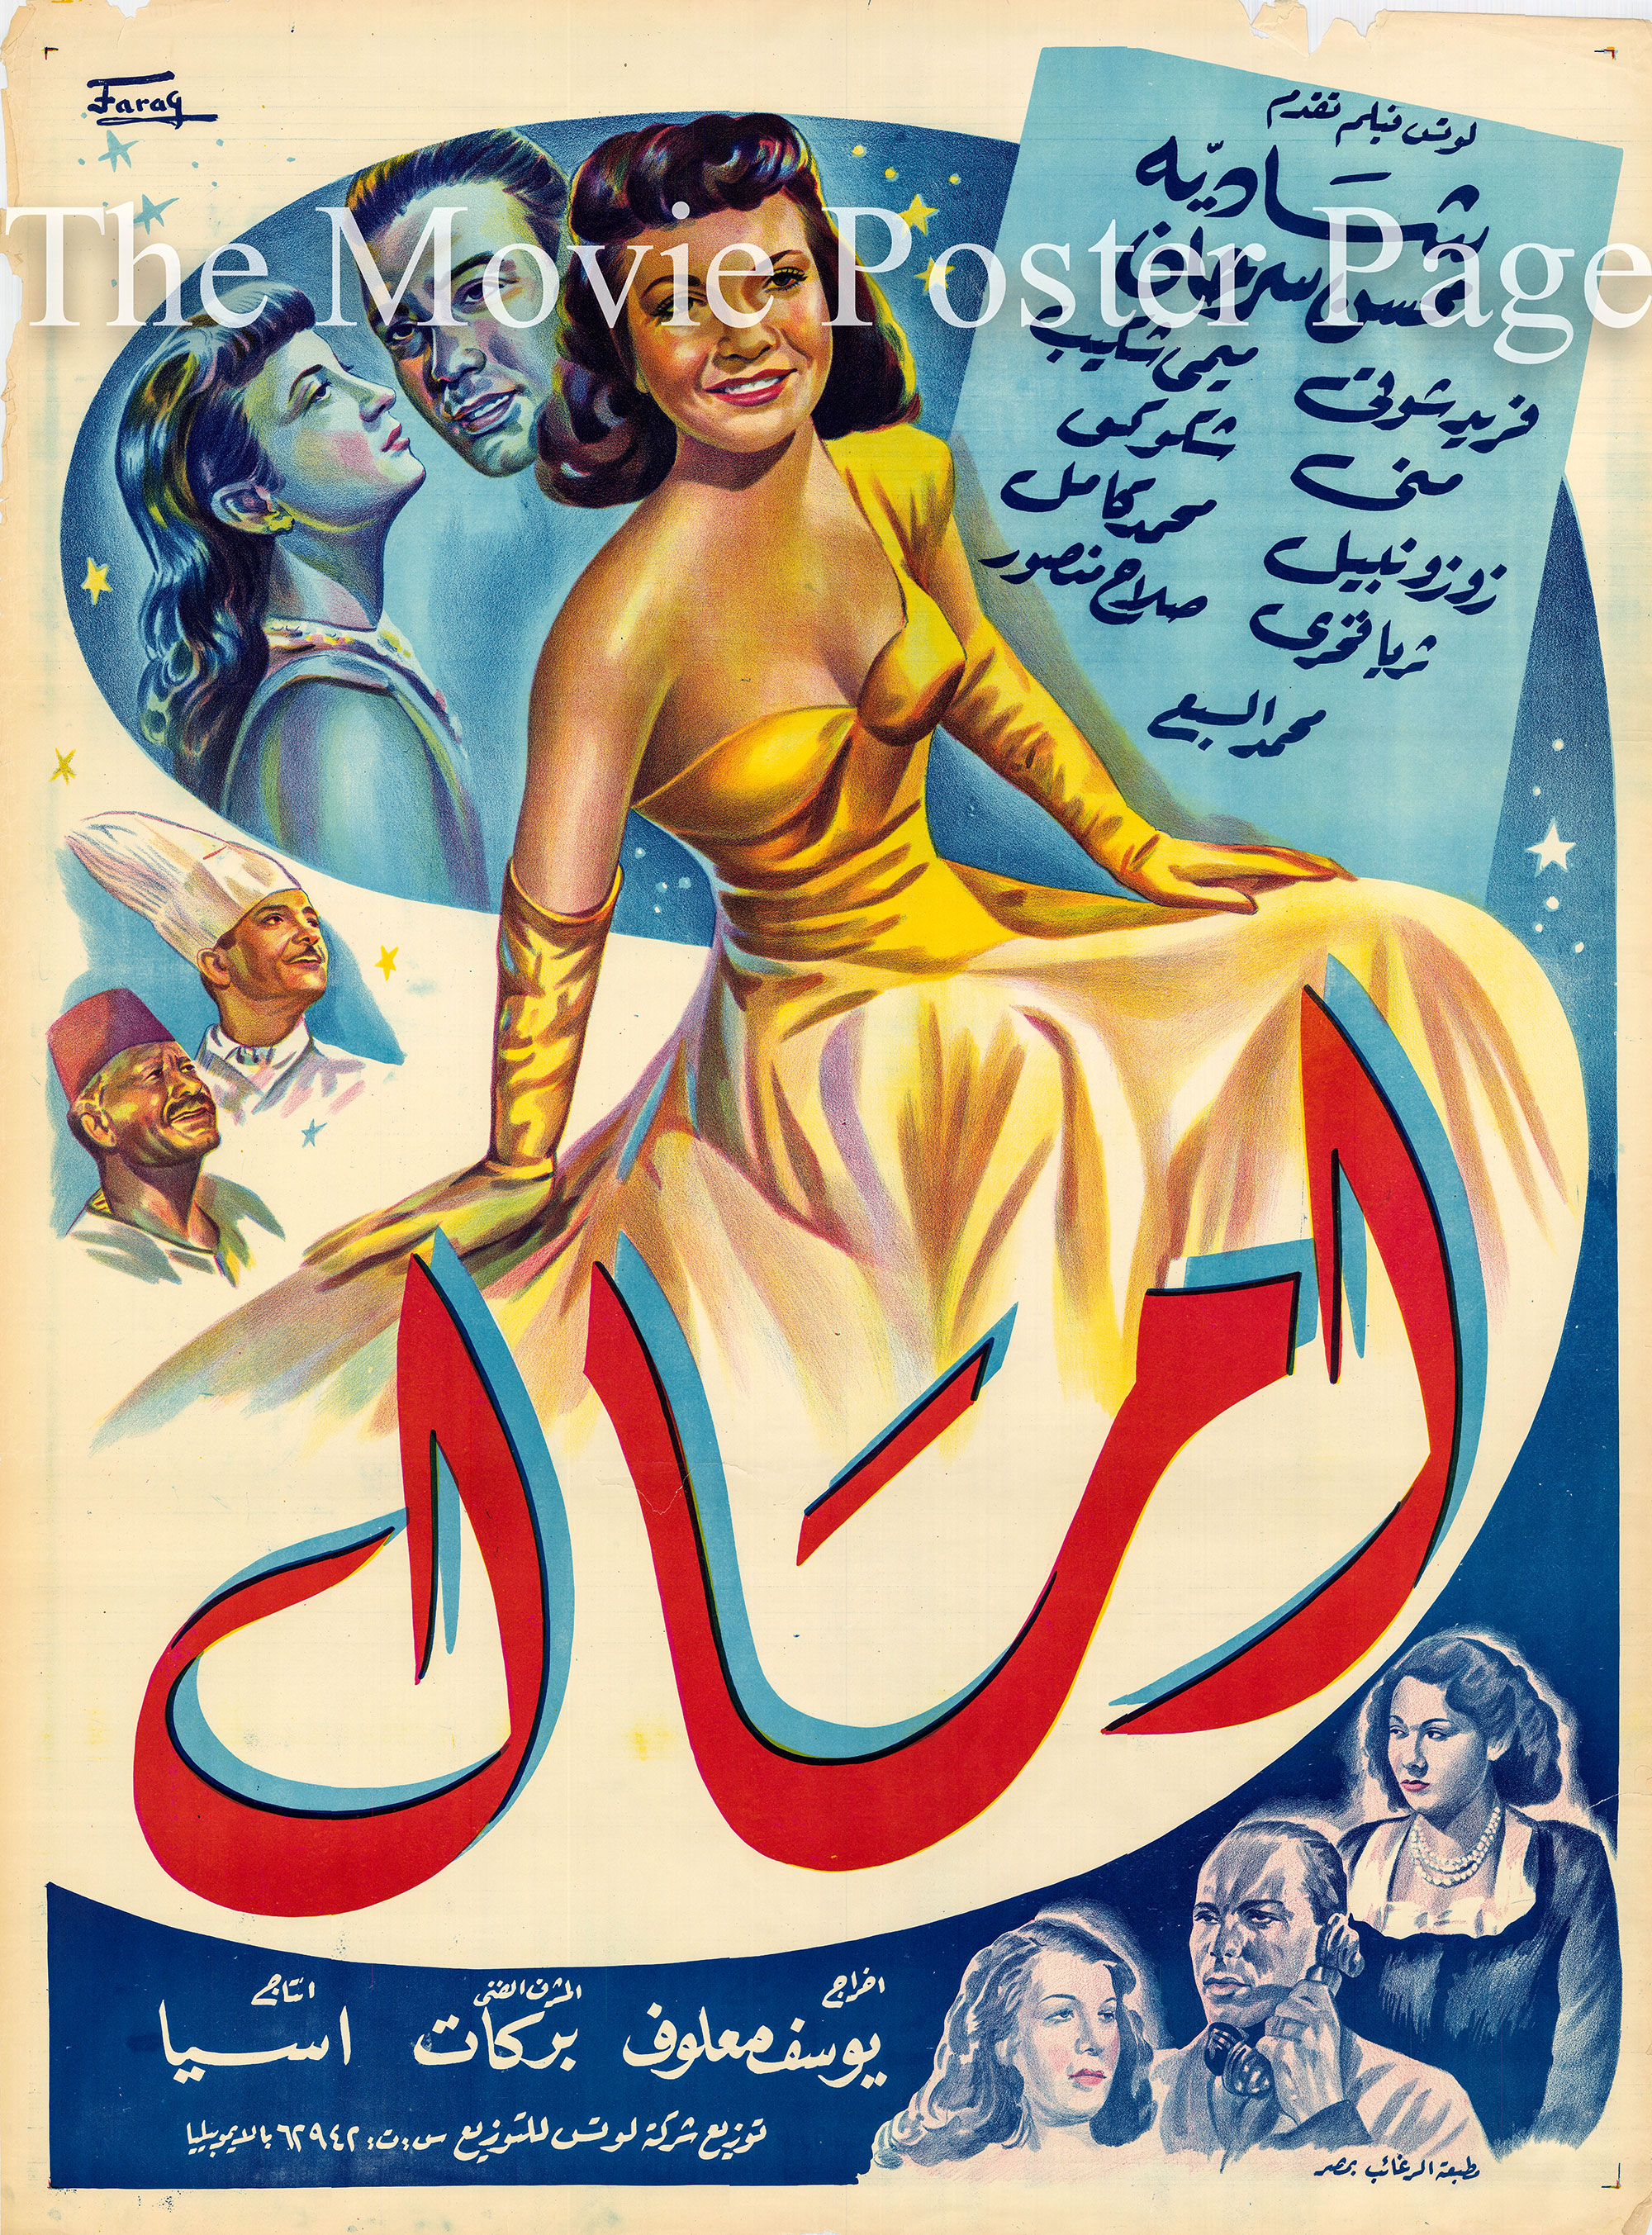 Pictured is an oversize Egyptian promotional poster for the 1952 Youssef Maalouf film Amal, starring Shadia as Amal.